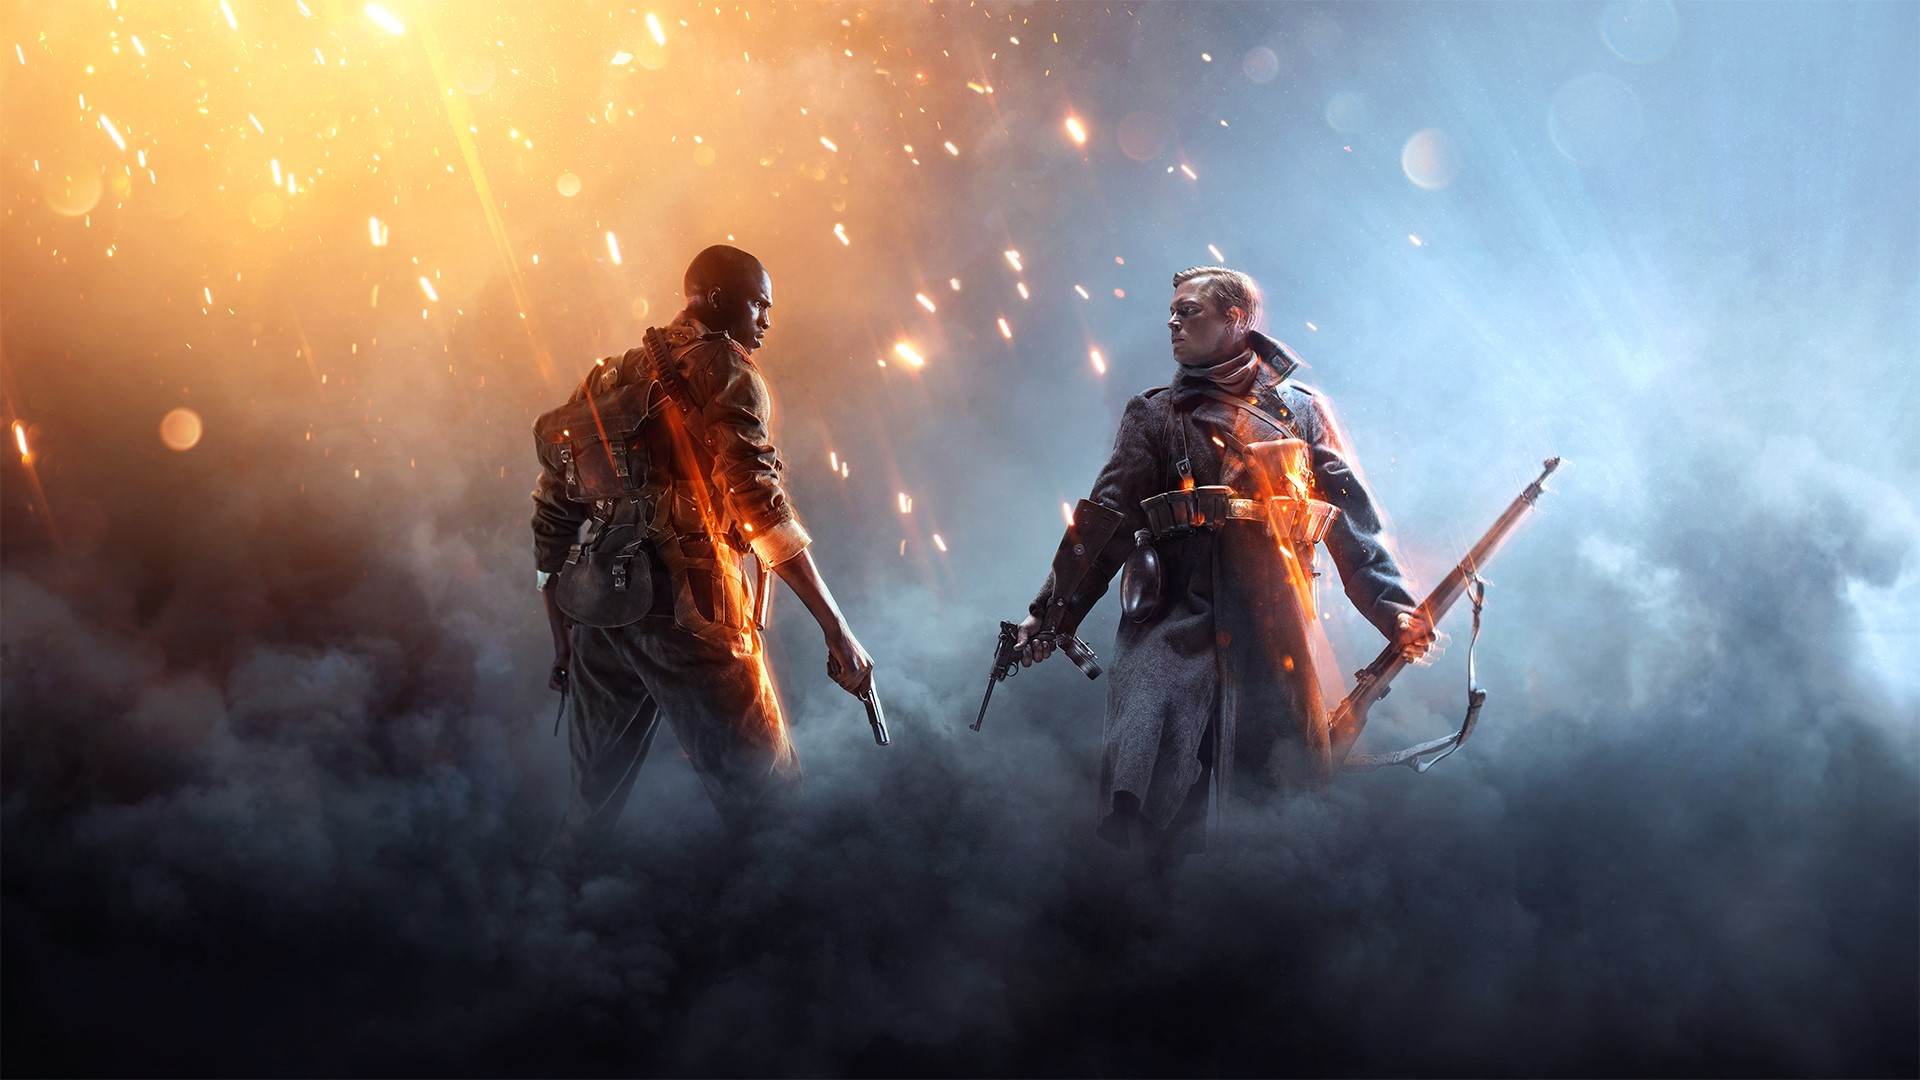 Battlefield 1 [Origin account] Guarantee